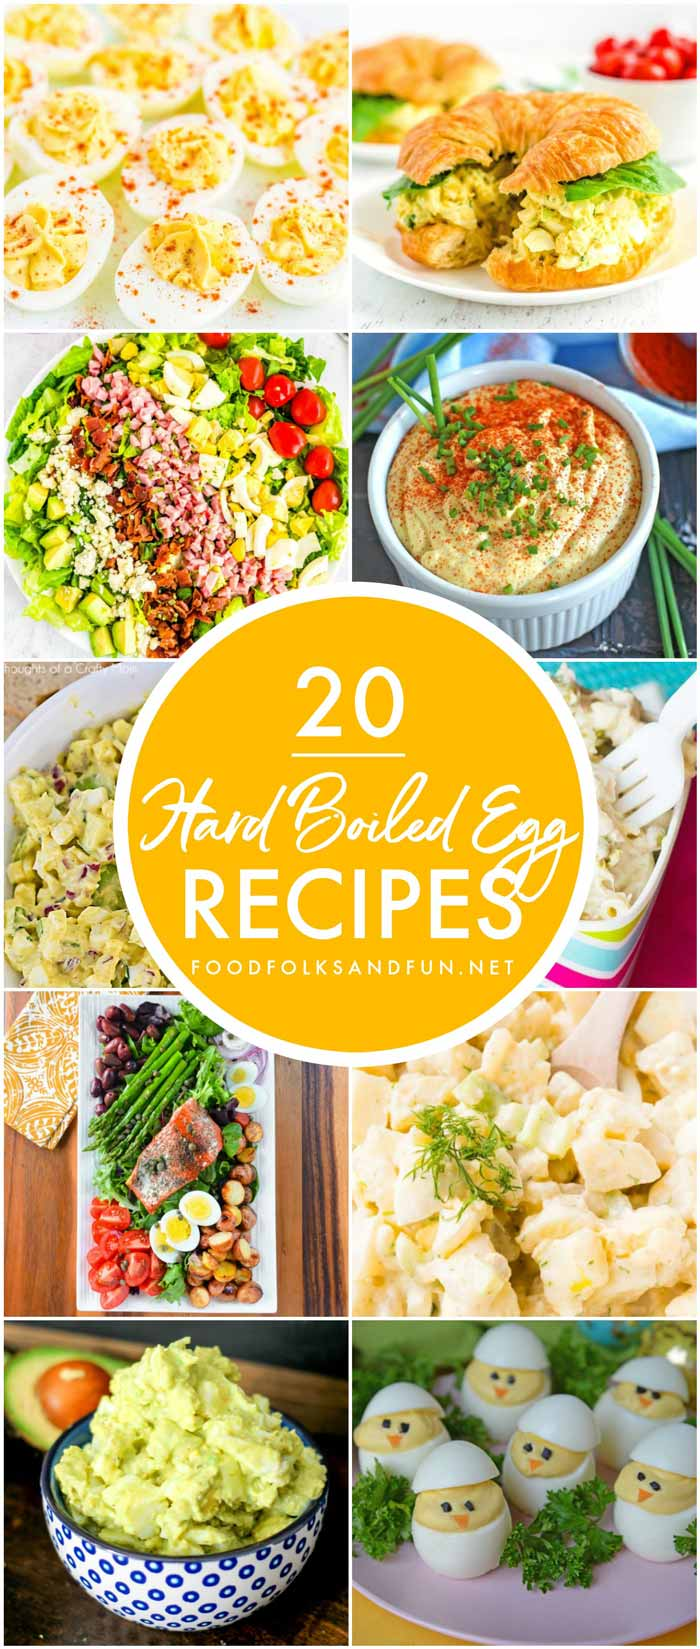 This Hard Boiled Egg Recipes Roundup has all of the recipes that you need to use up leftover Easter eggs! Here you'll find leafy salads, deviled eggs, egg salads, and more! #Easter #Spring #EasterRecipes #SpringRecipes #Eggs #HardBoiledEggs #Salads #foodfolksandfun via @foodfolksandfun